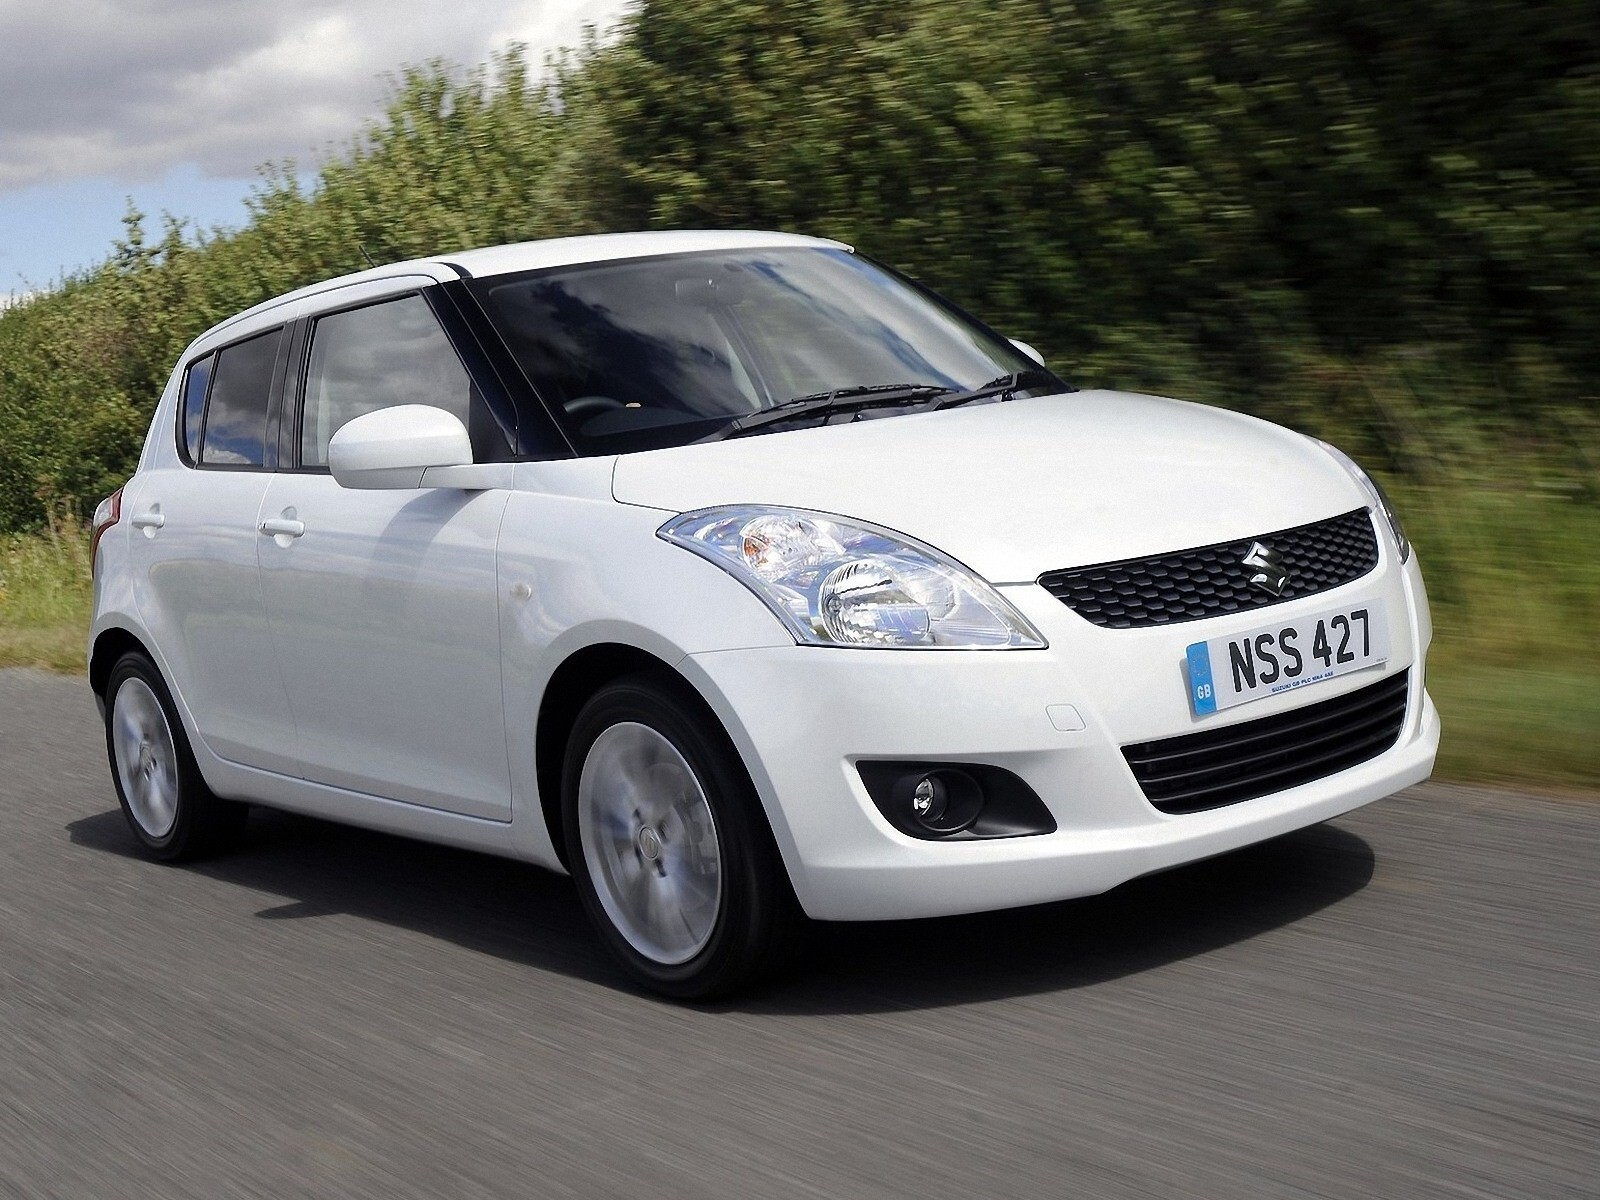 Suzuki Swift 2011white Car Wallpaper Hd Wallpapers